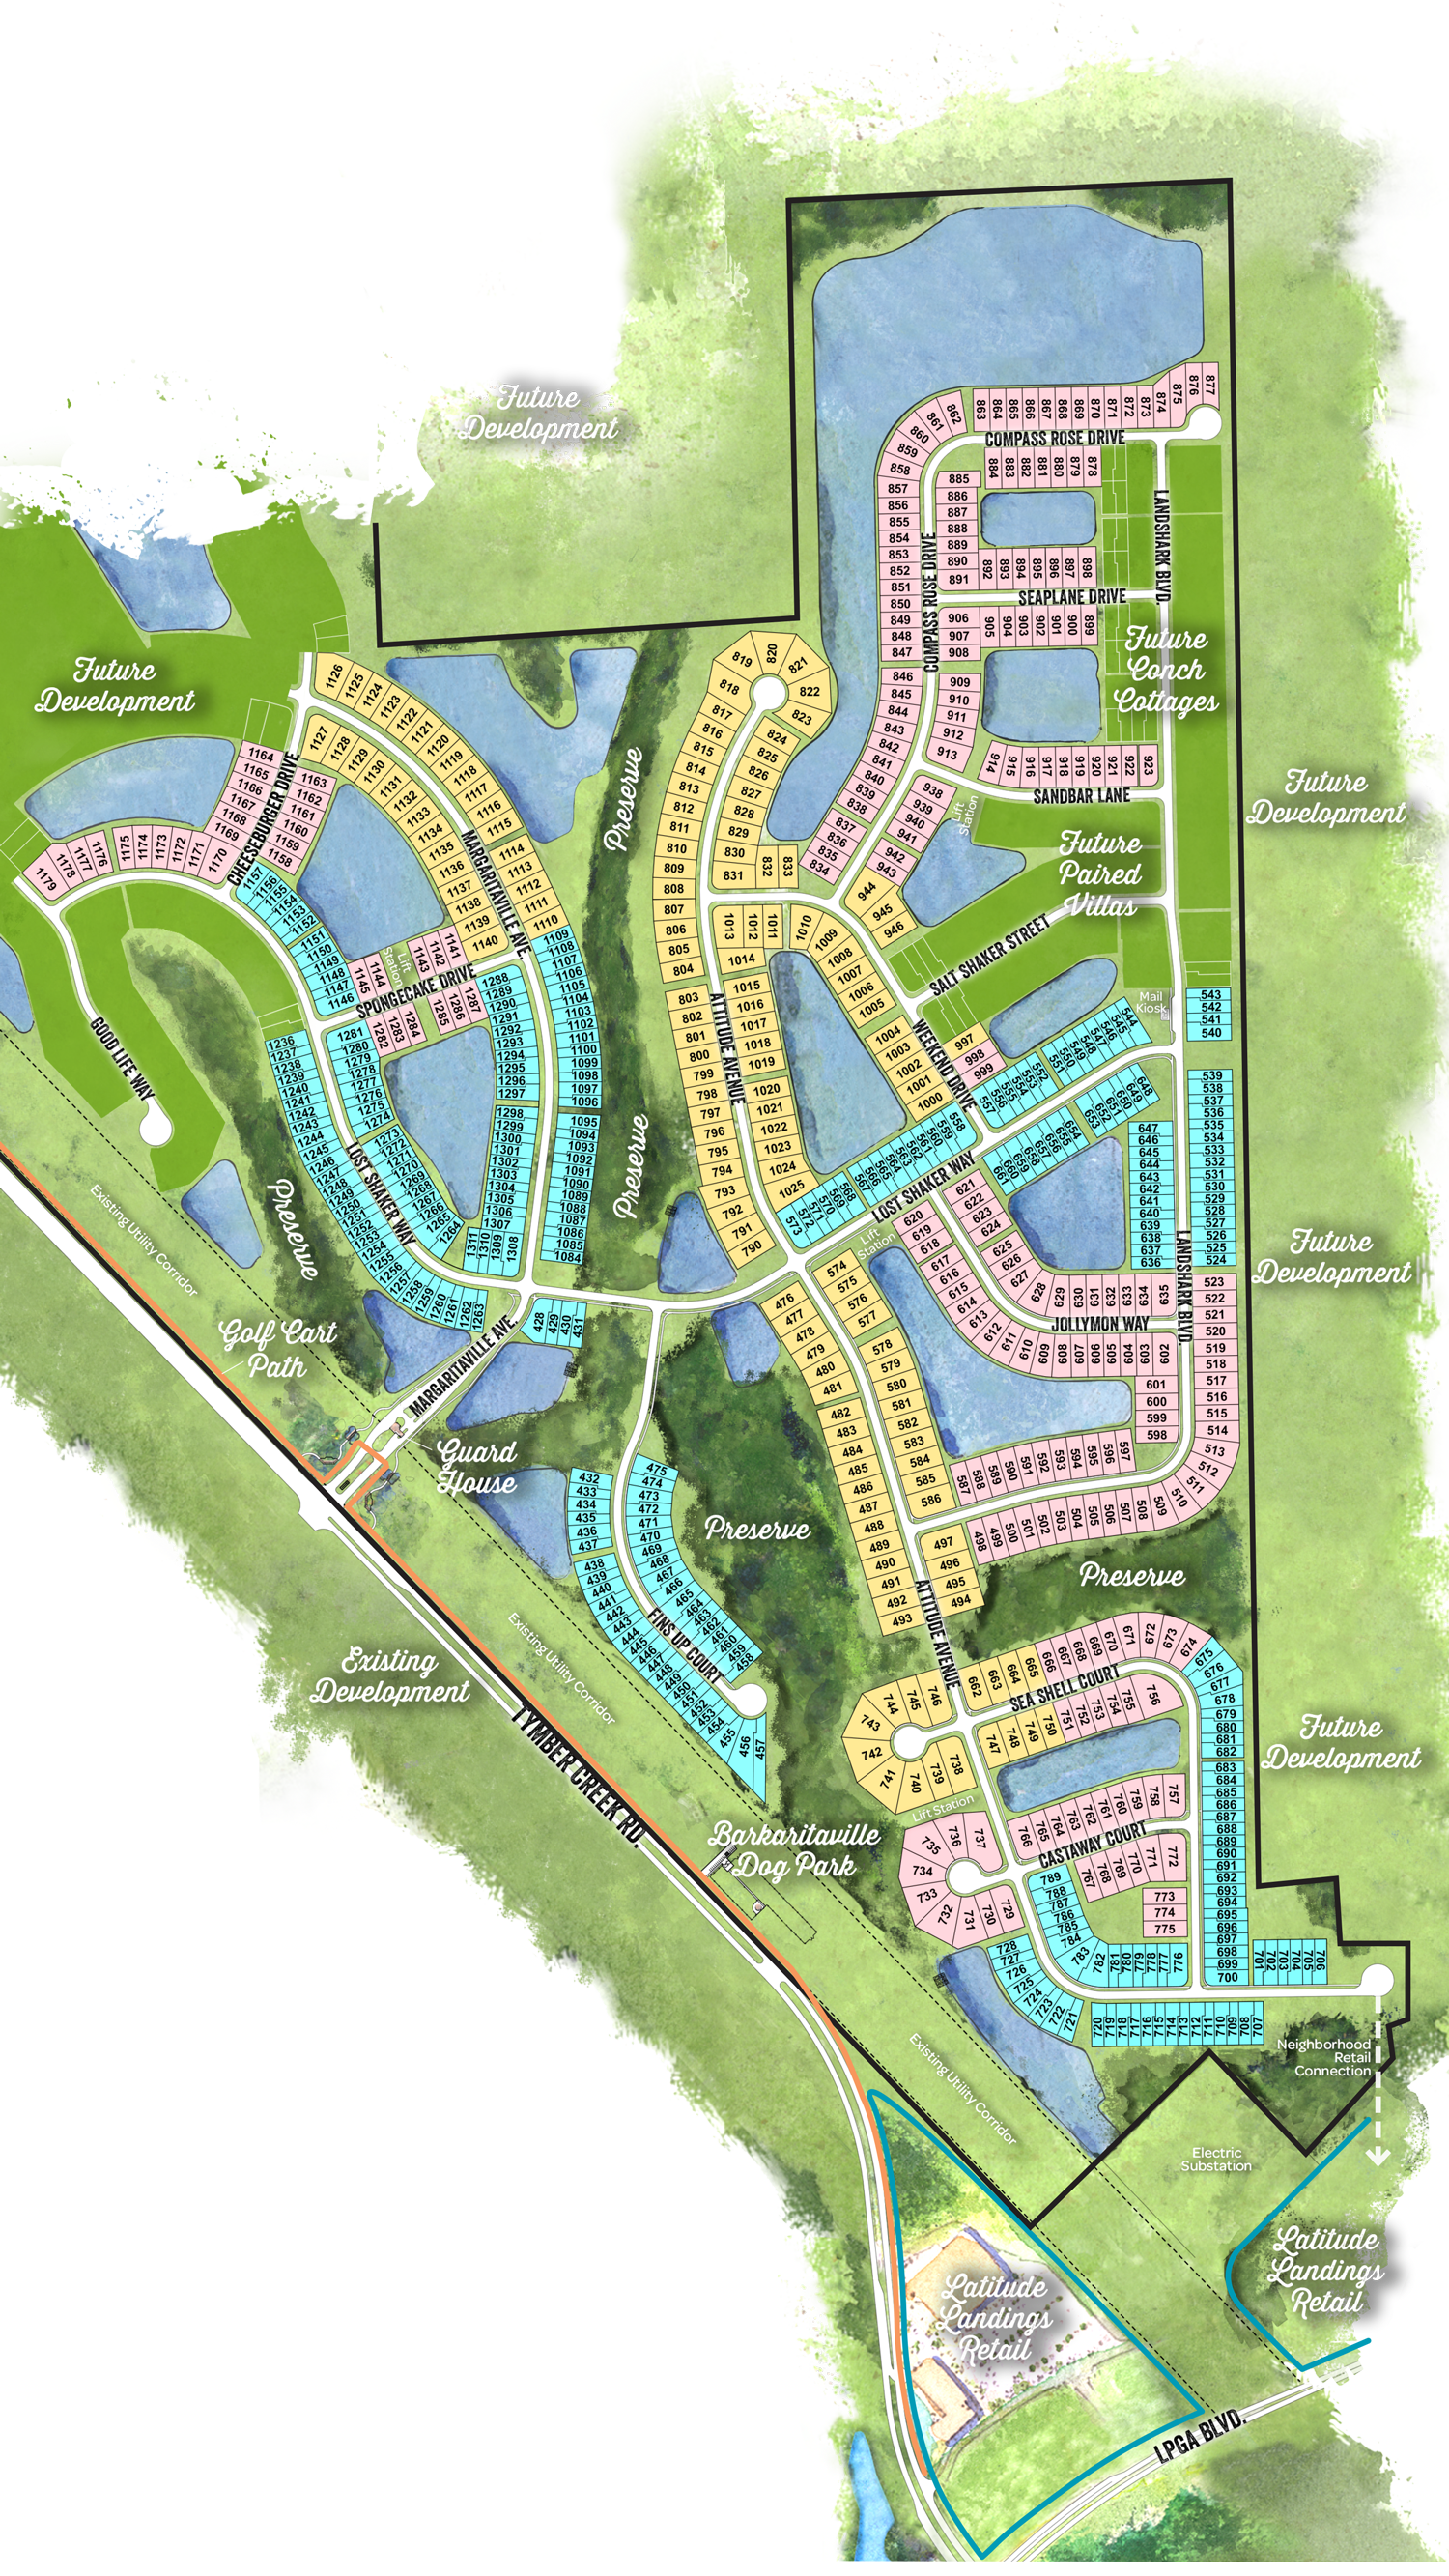 Latitude Margaritaville phase two site plan with arial layout of the Daytona Beach development